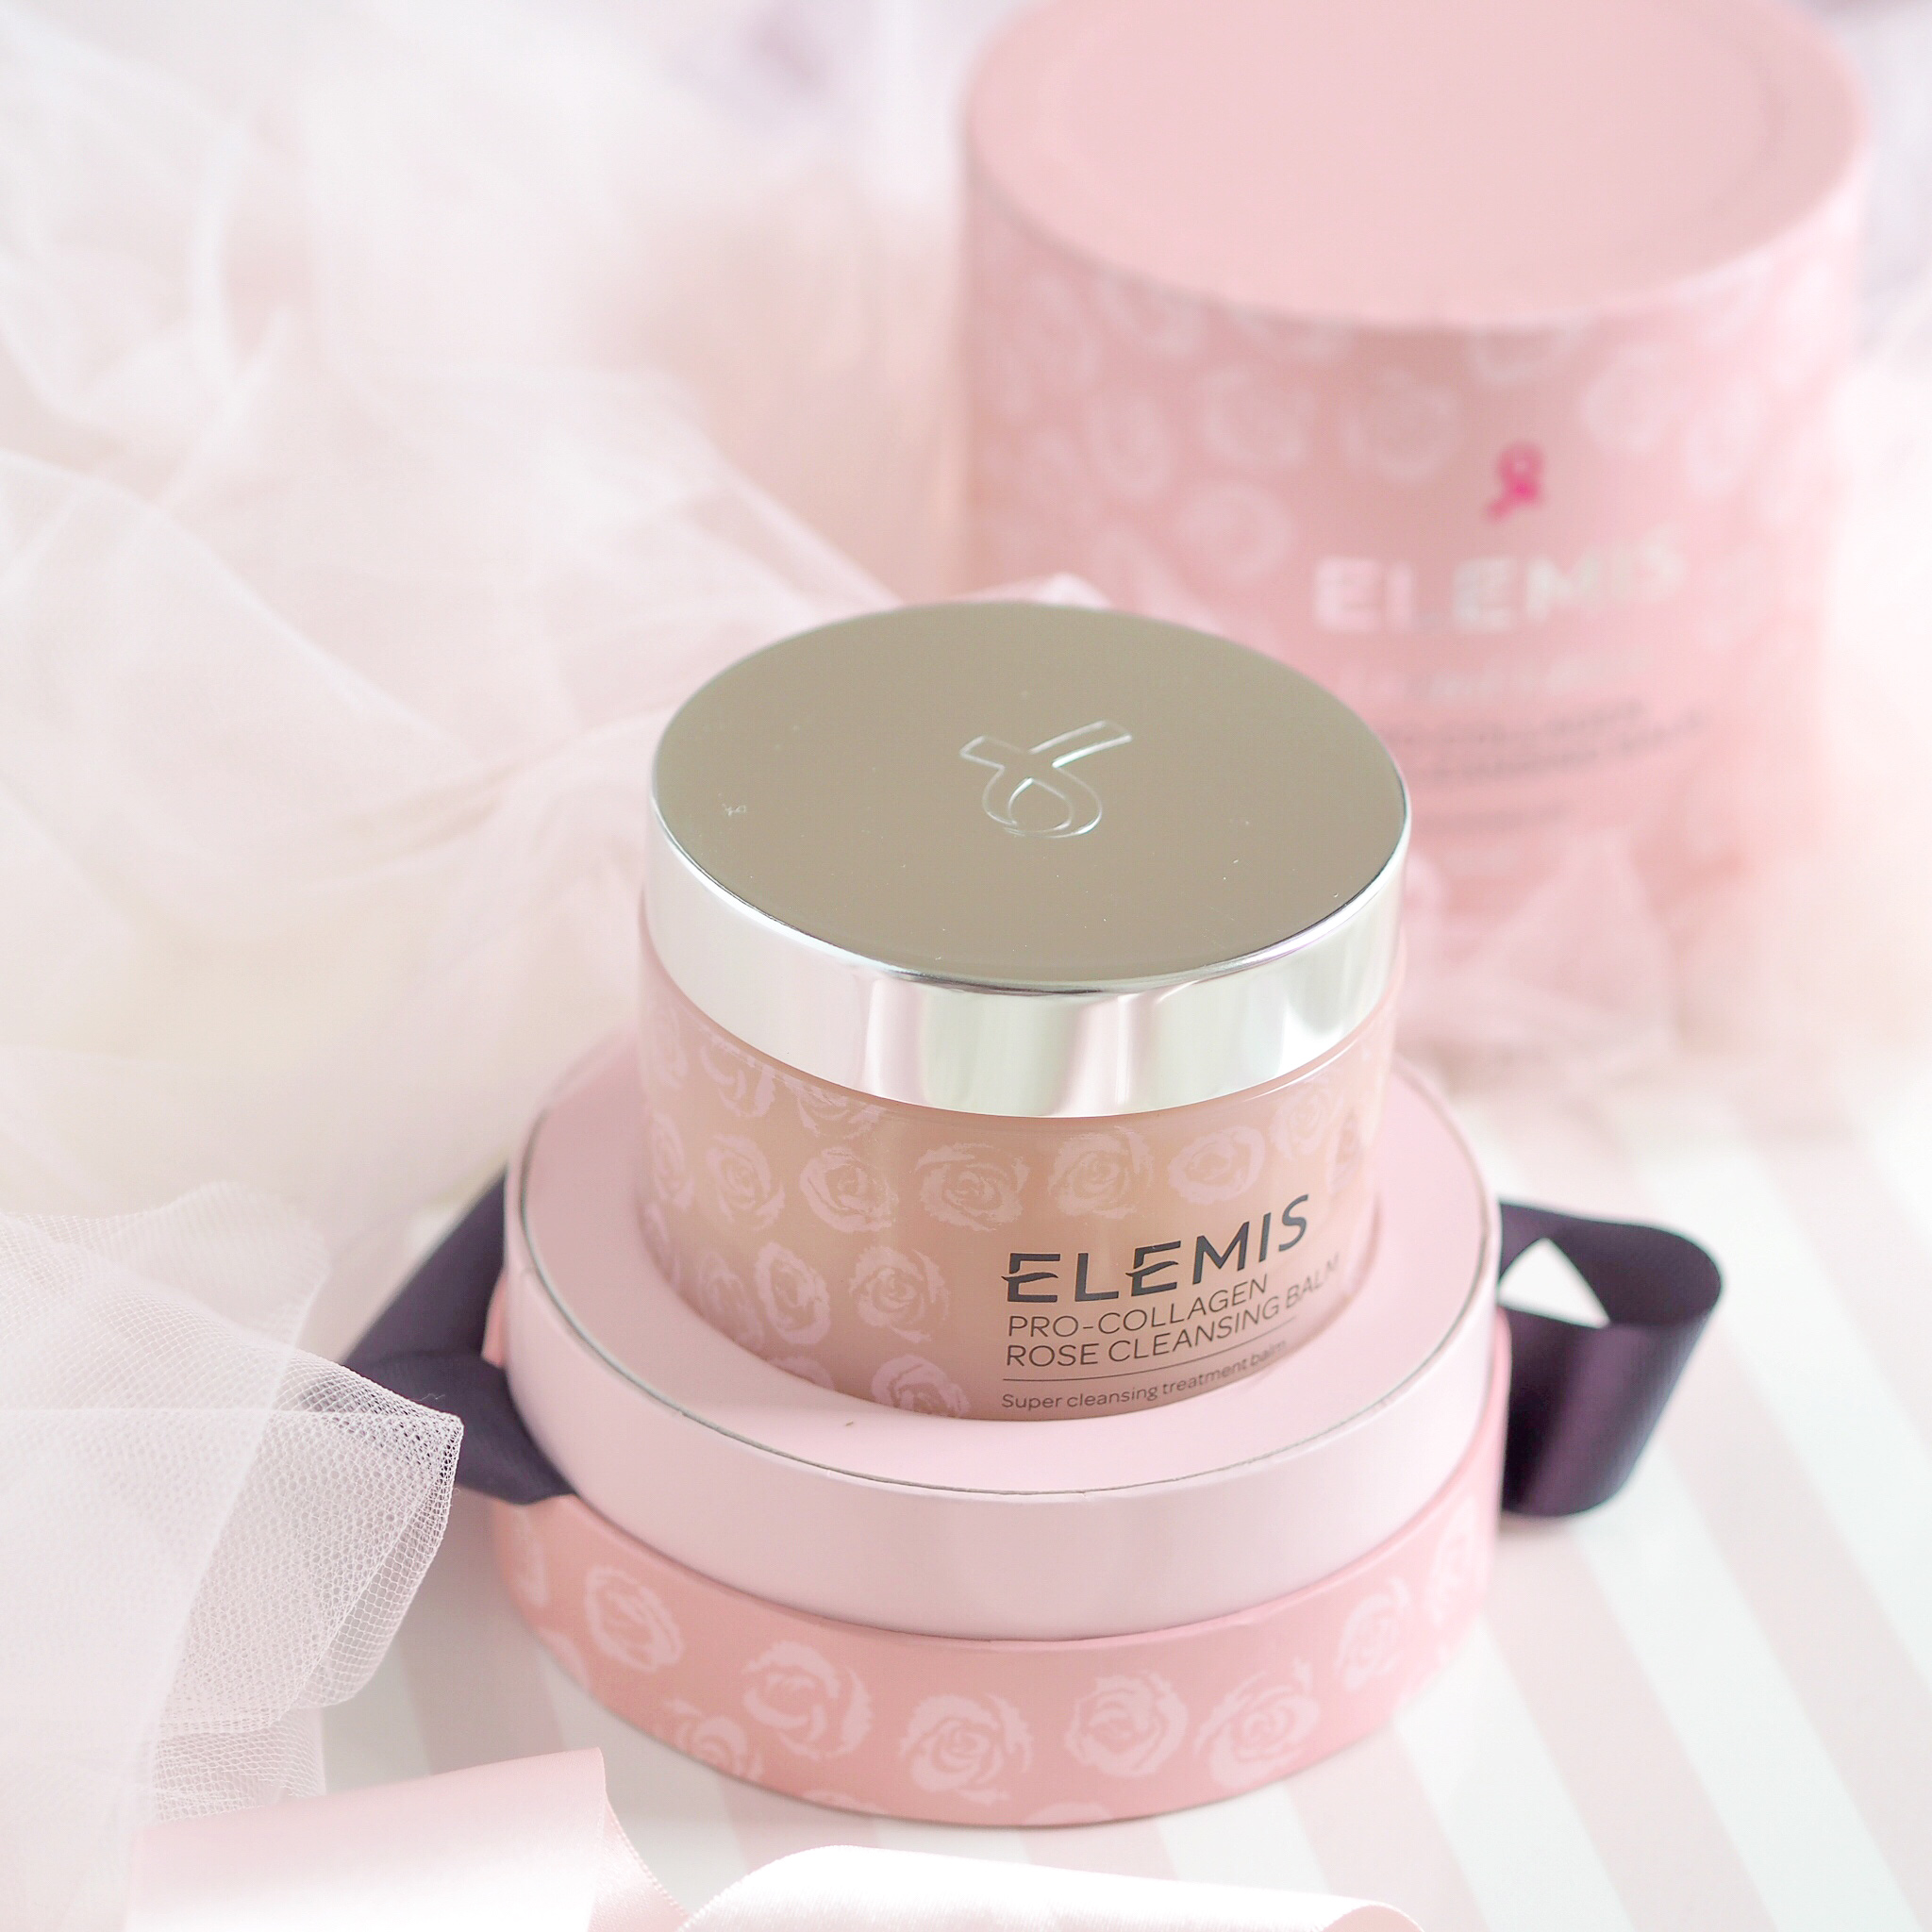 An Oh So Gorgeous Limited Edition: Elemis Pro-Collagen Rose Cleansing Balm | Love Catherine